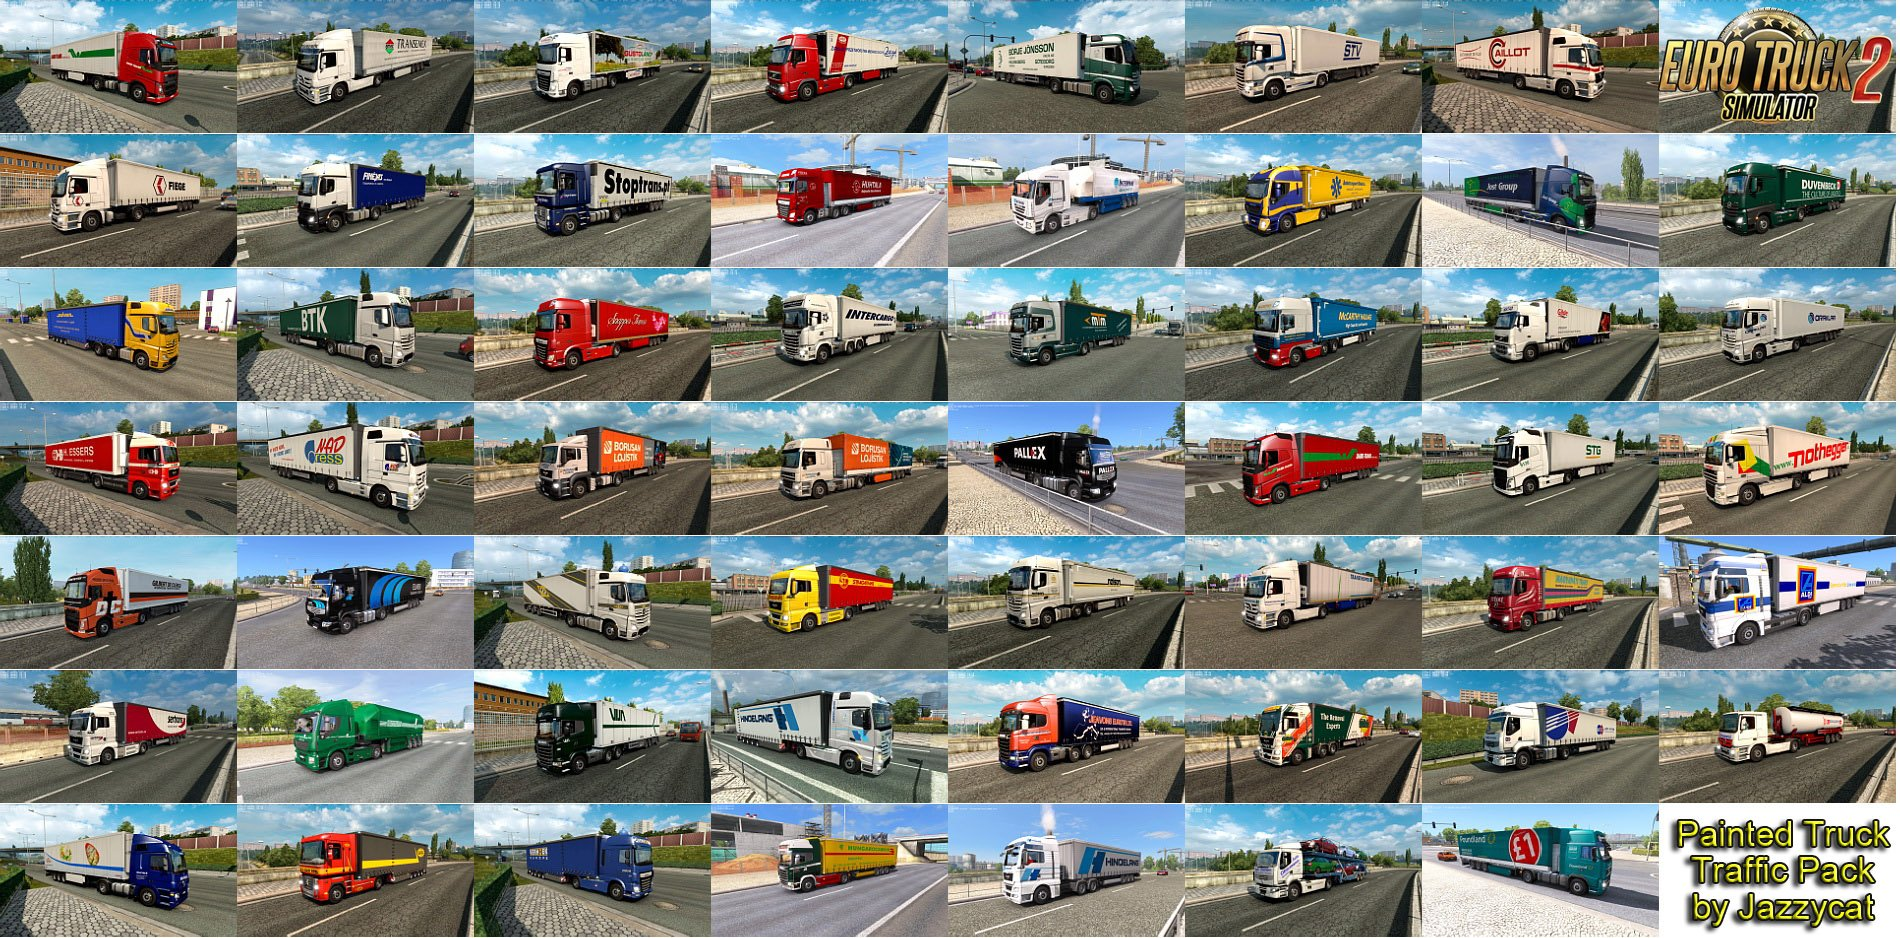 Painted Truck Traffic Pack v6.4 by Jazzycat